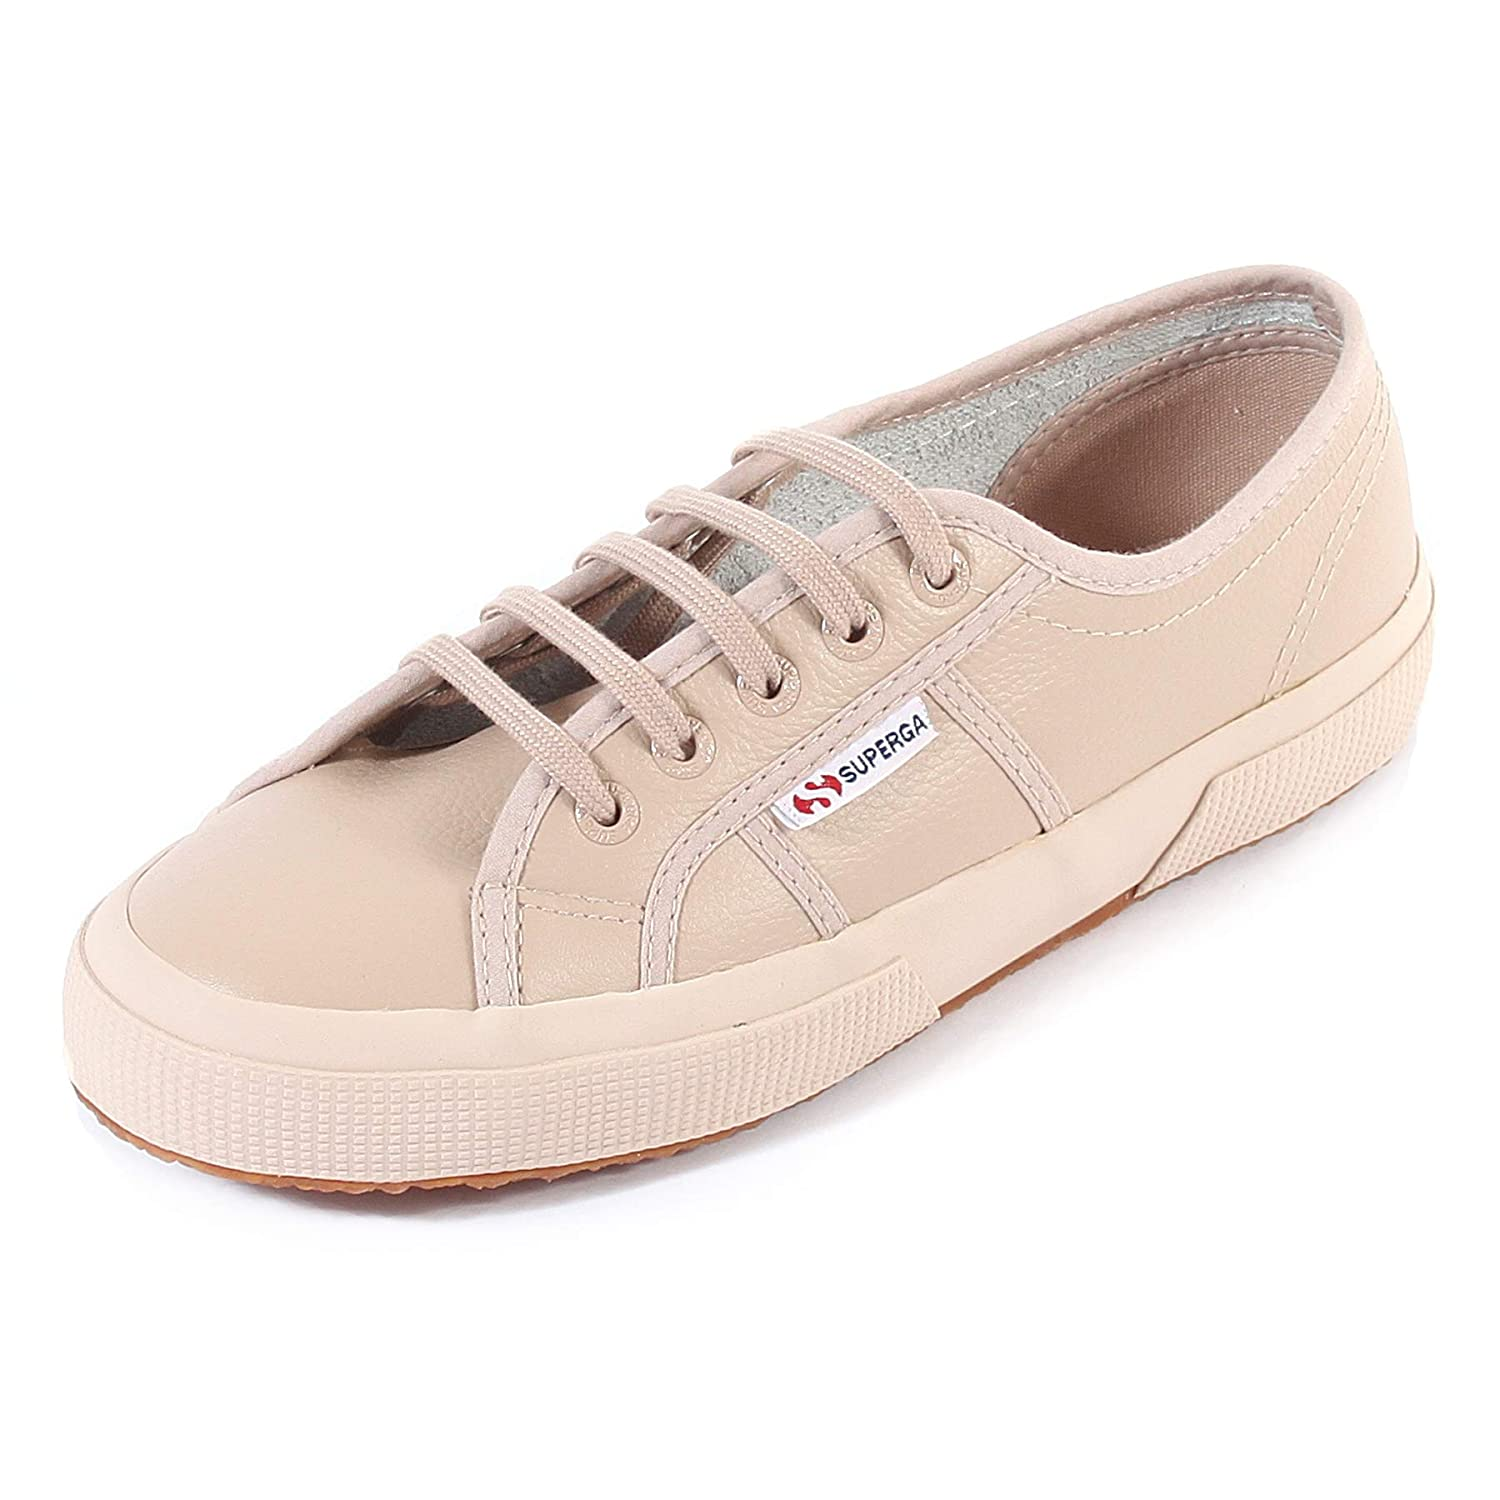 Superga 2750 Efglu White Womens Leather Low-top Lace-up Trainers